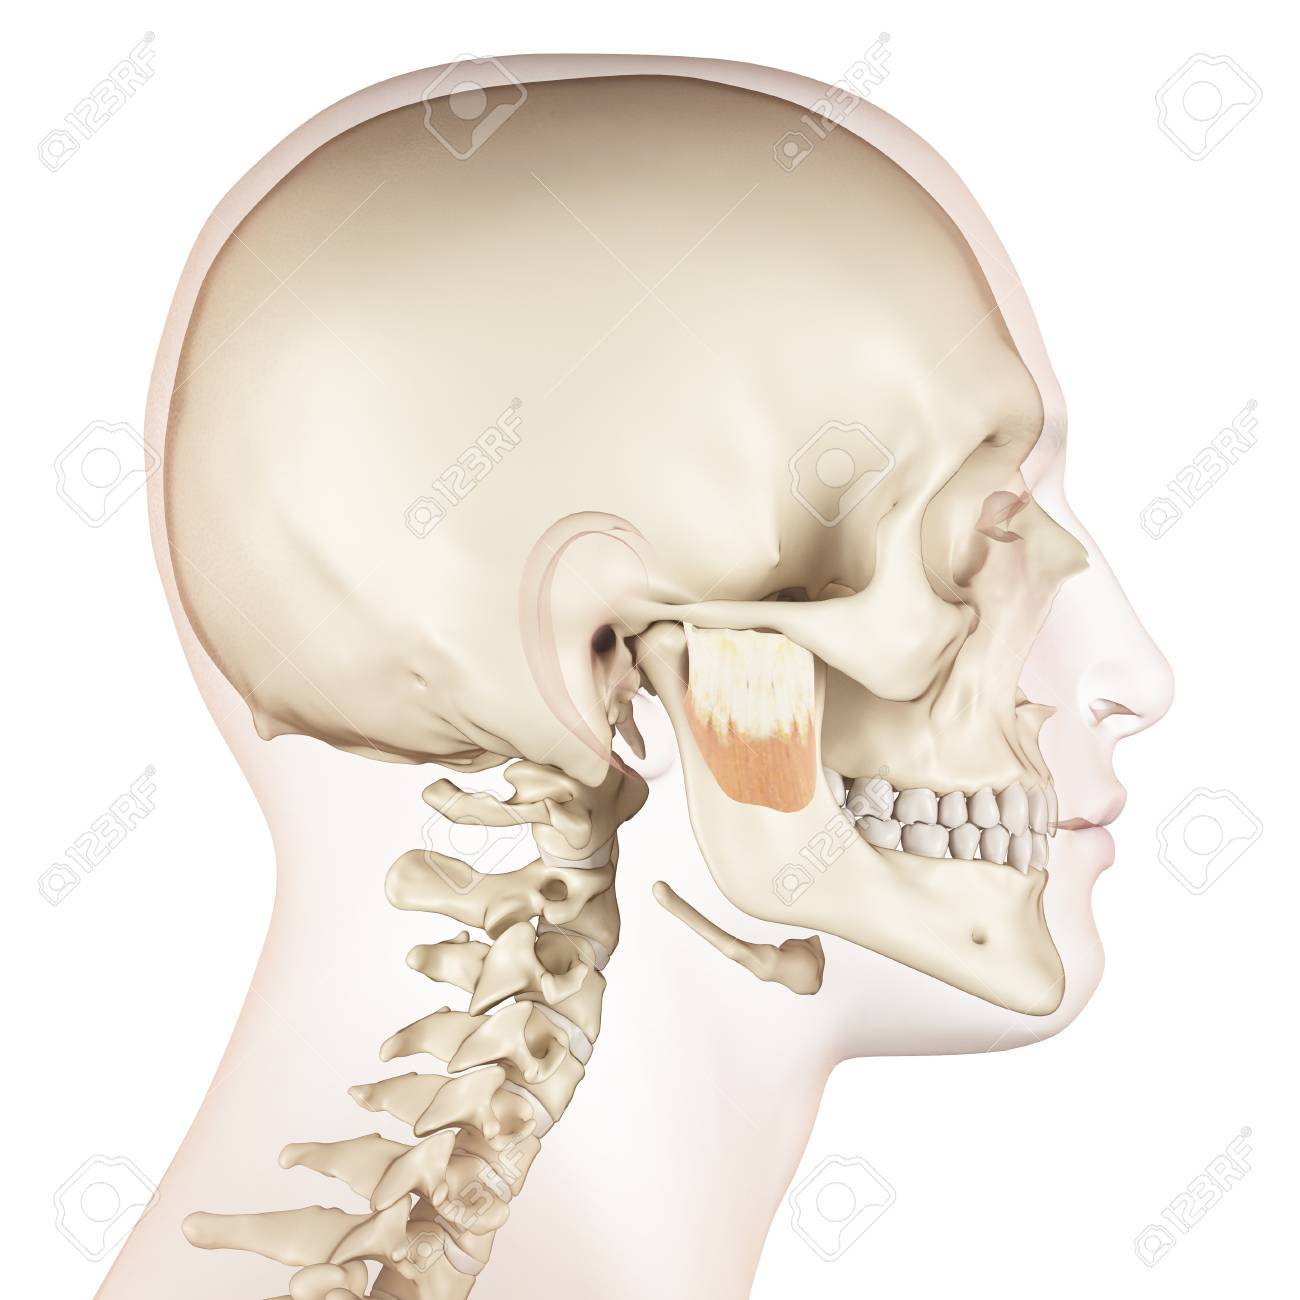 Human Jaw Muscles Illustration Stock Photo Picture And Royalty